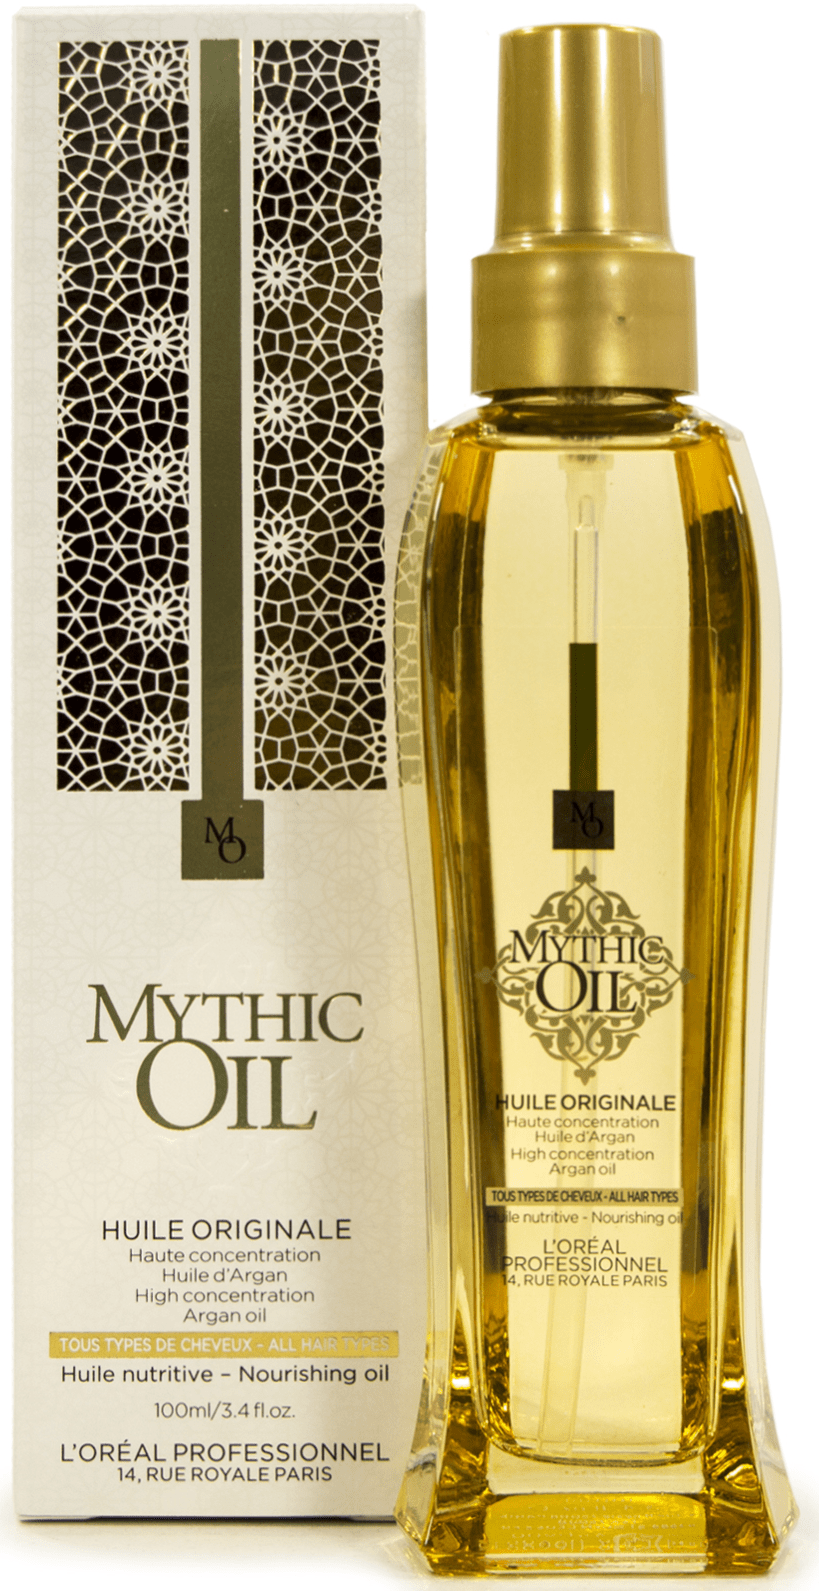 «L'Oreal Professional» Mythic Oil